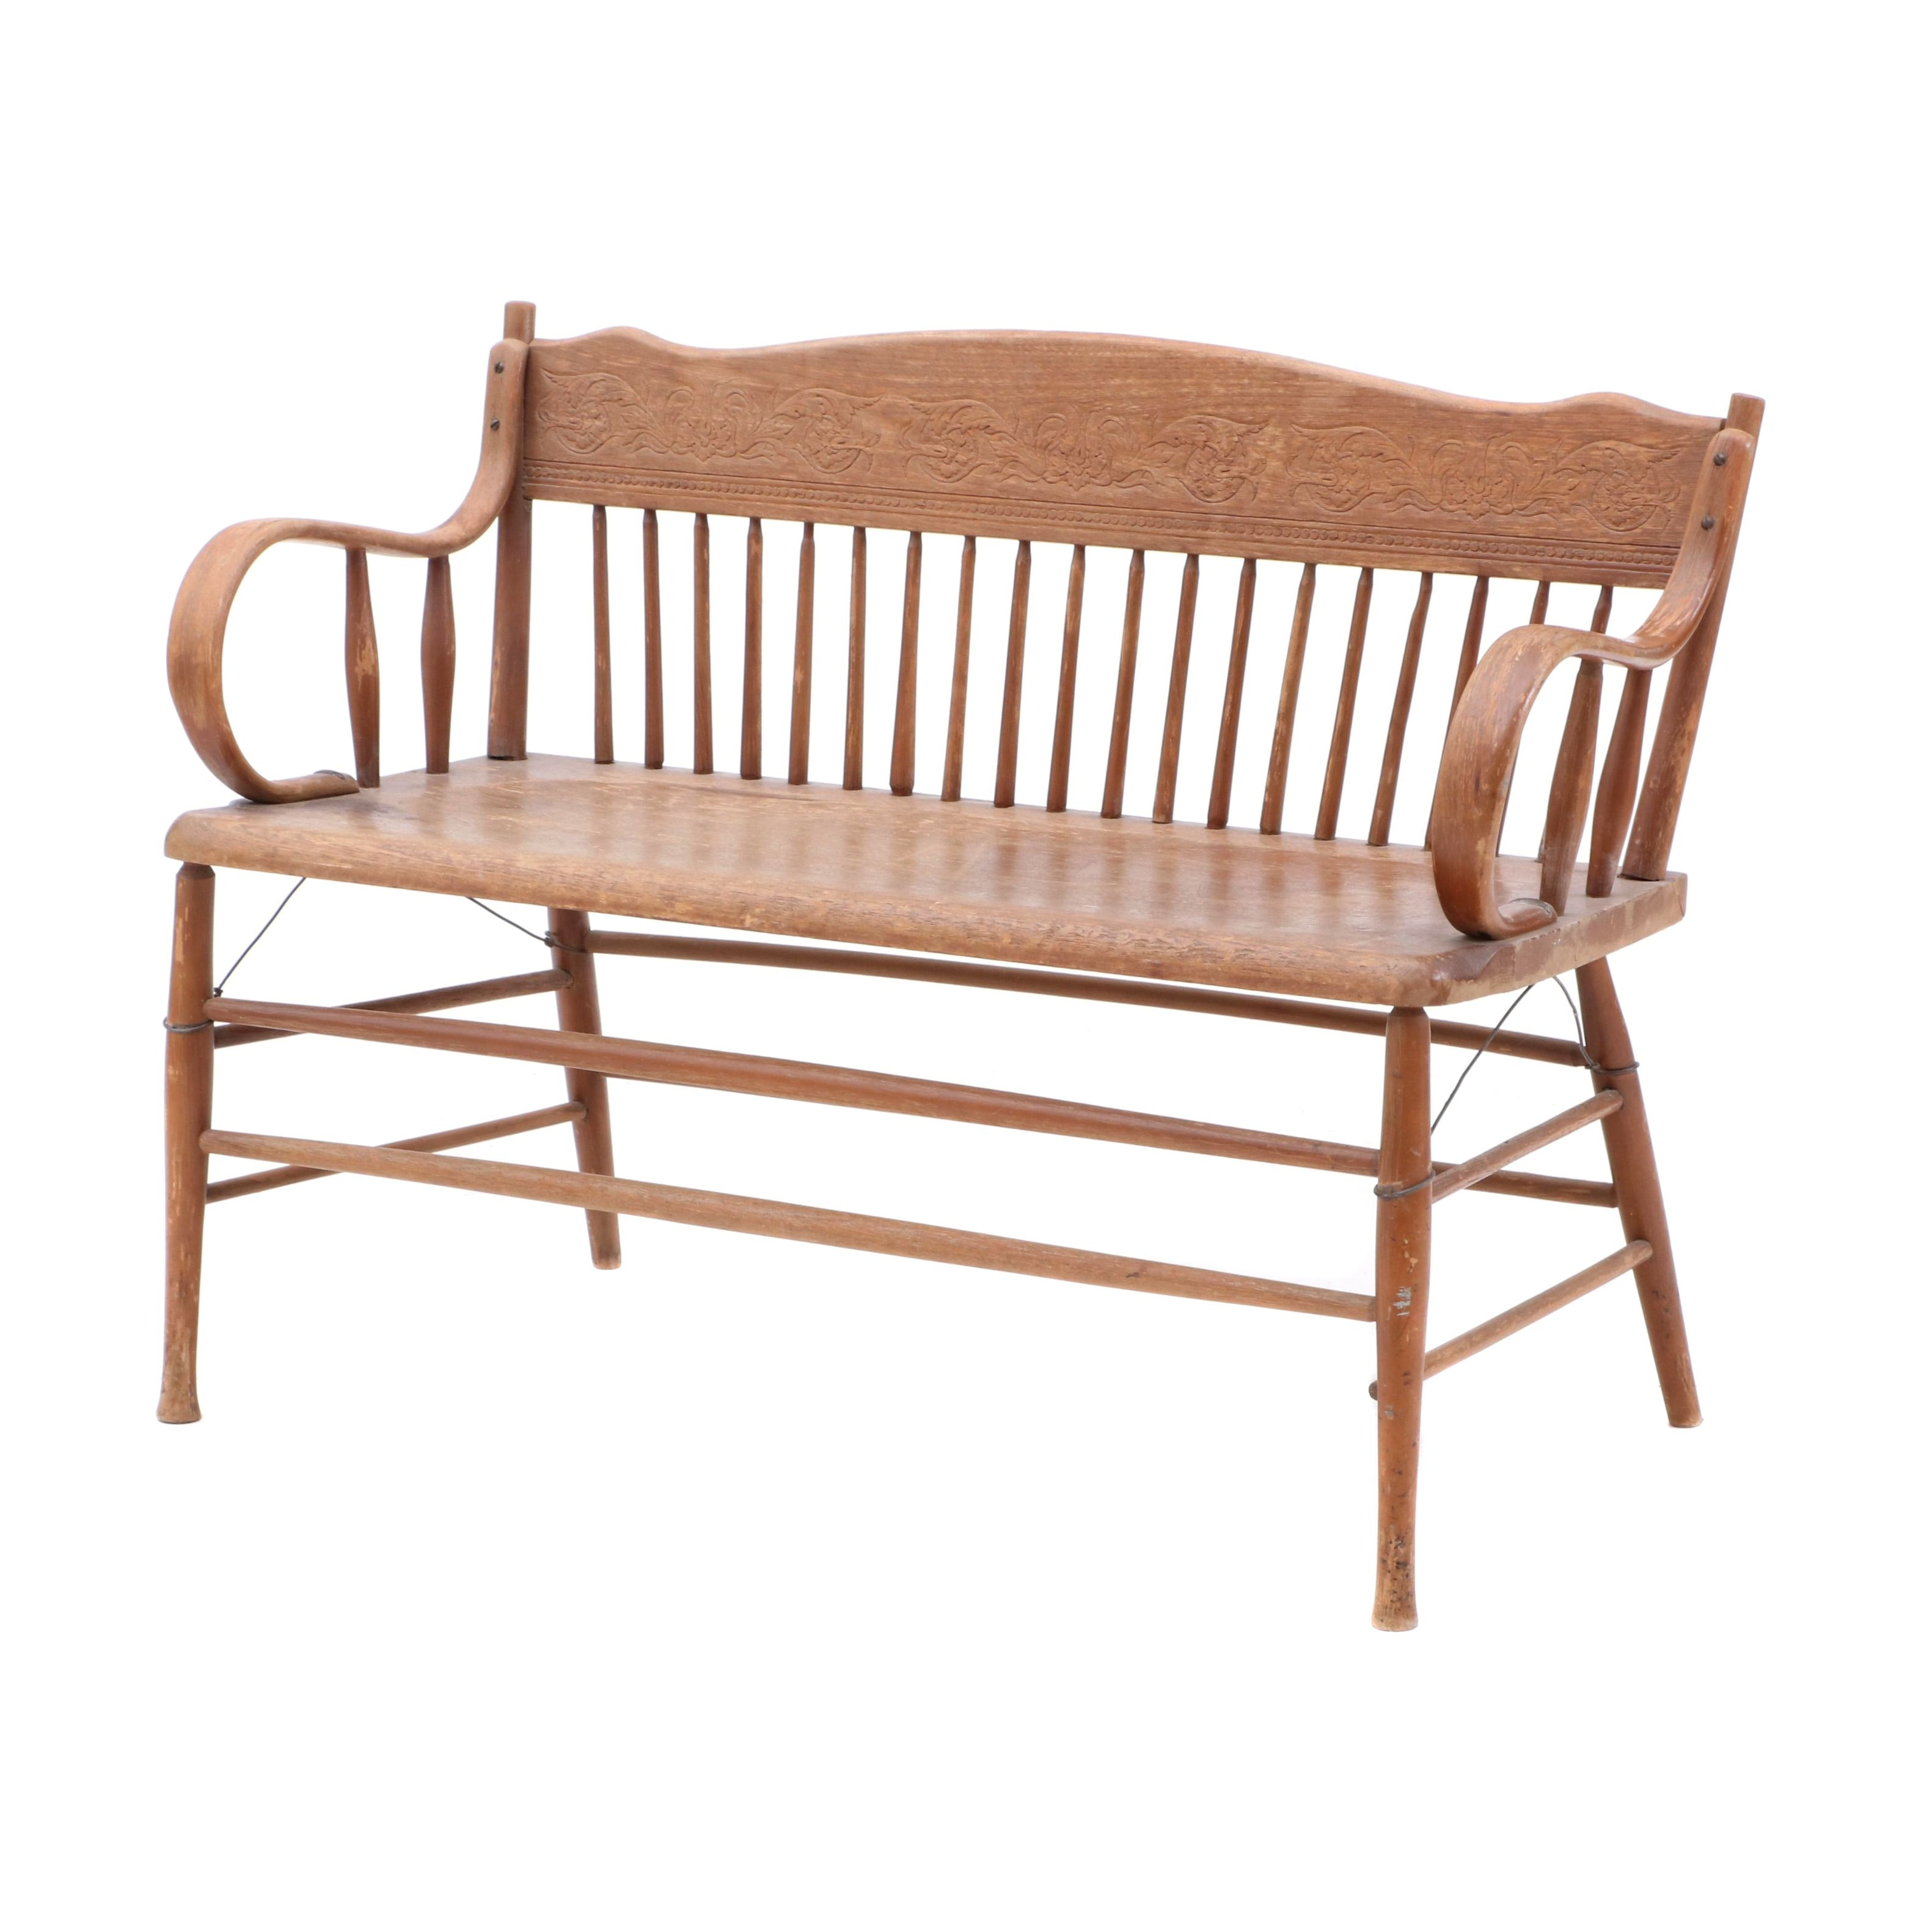 Pressed Back Birch Bench, Early 20th Century